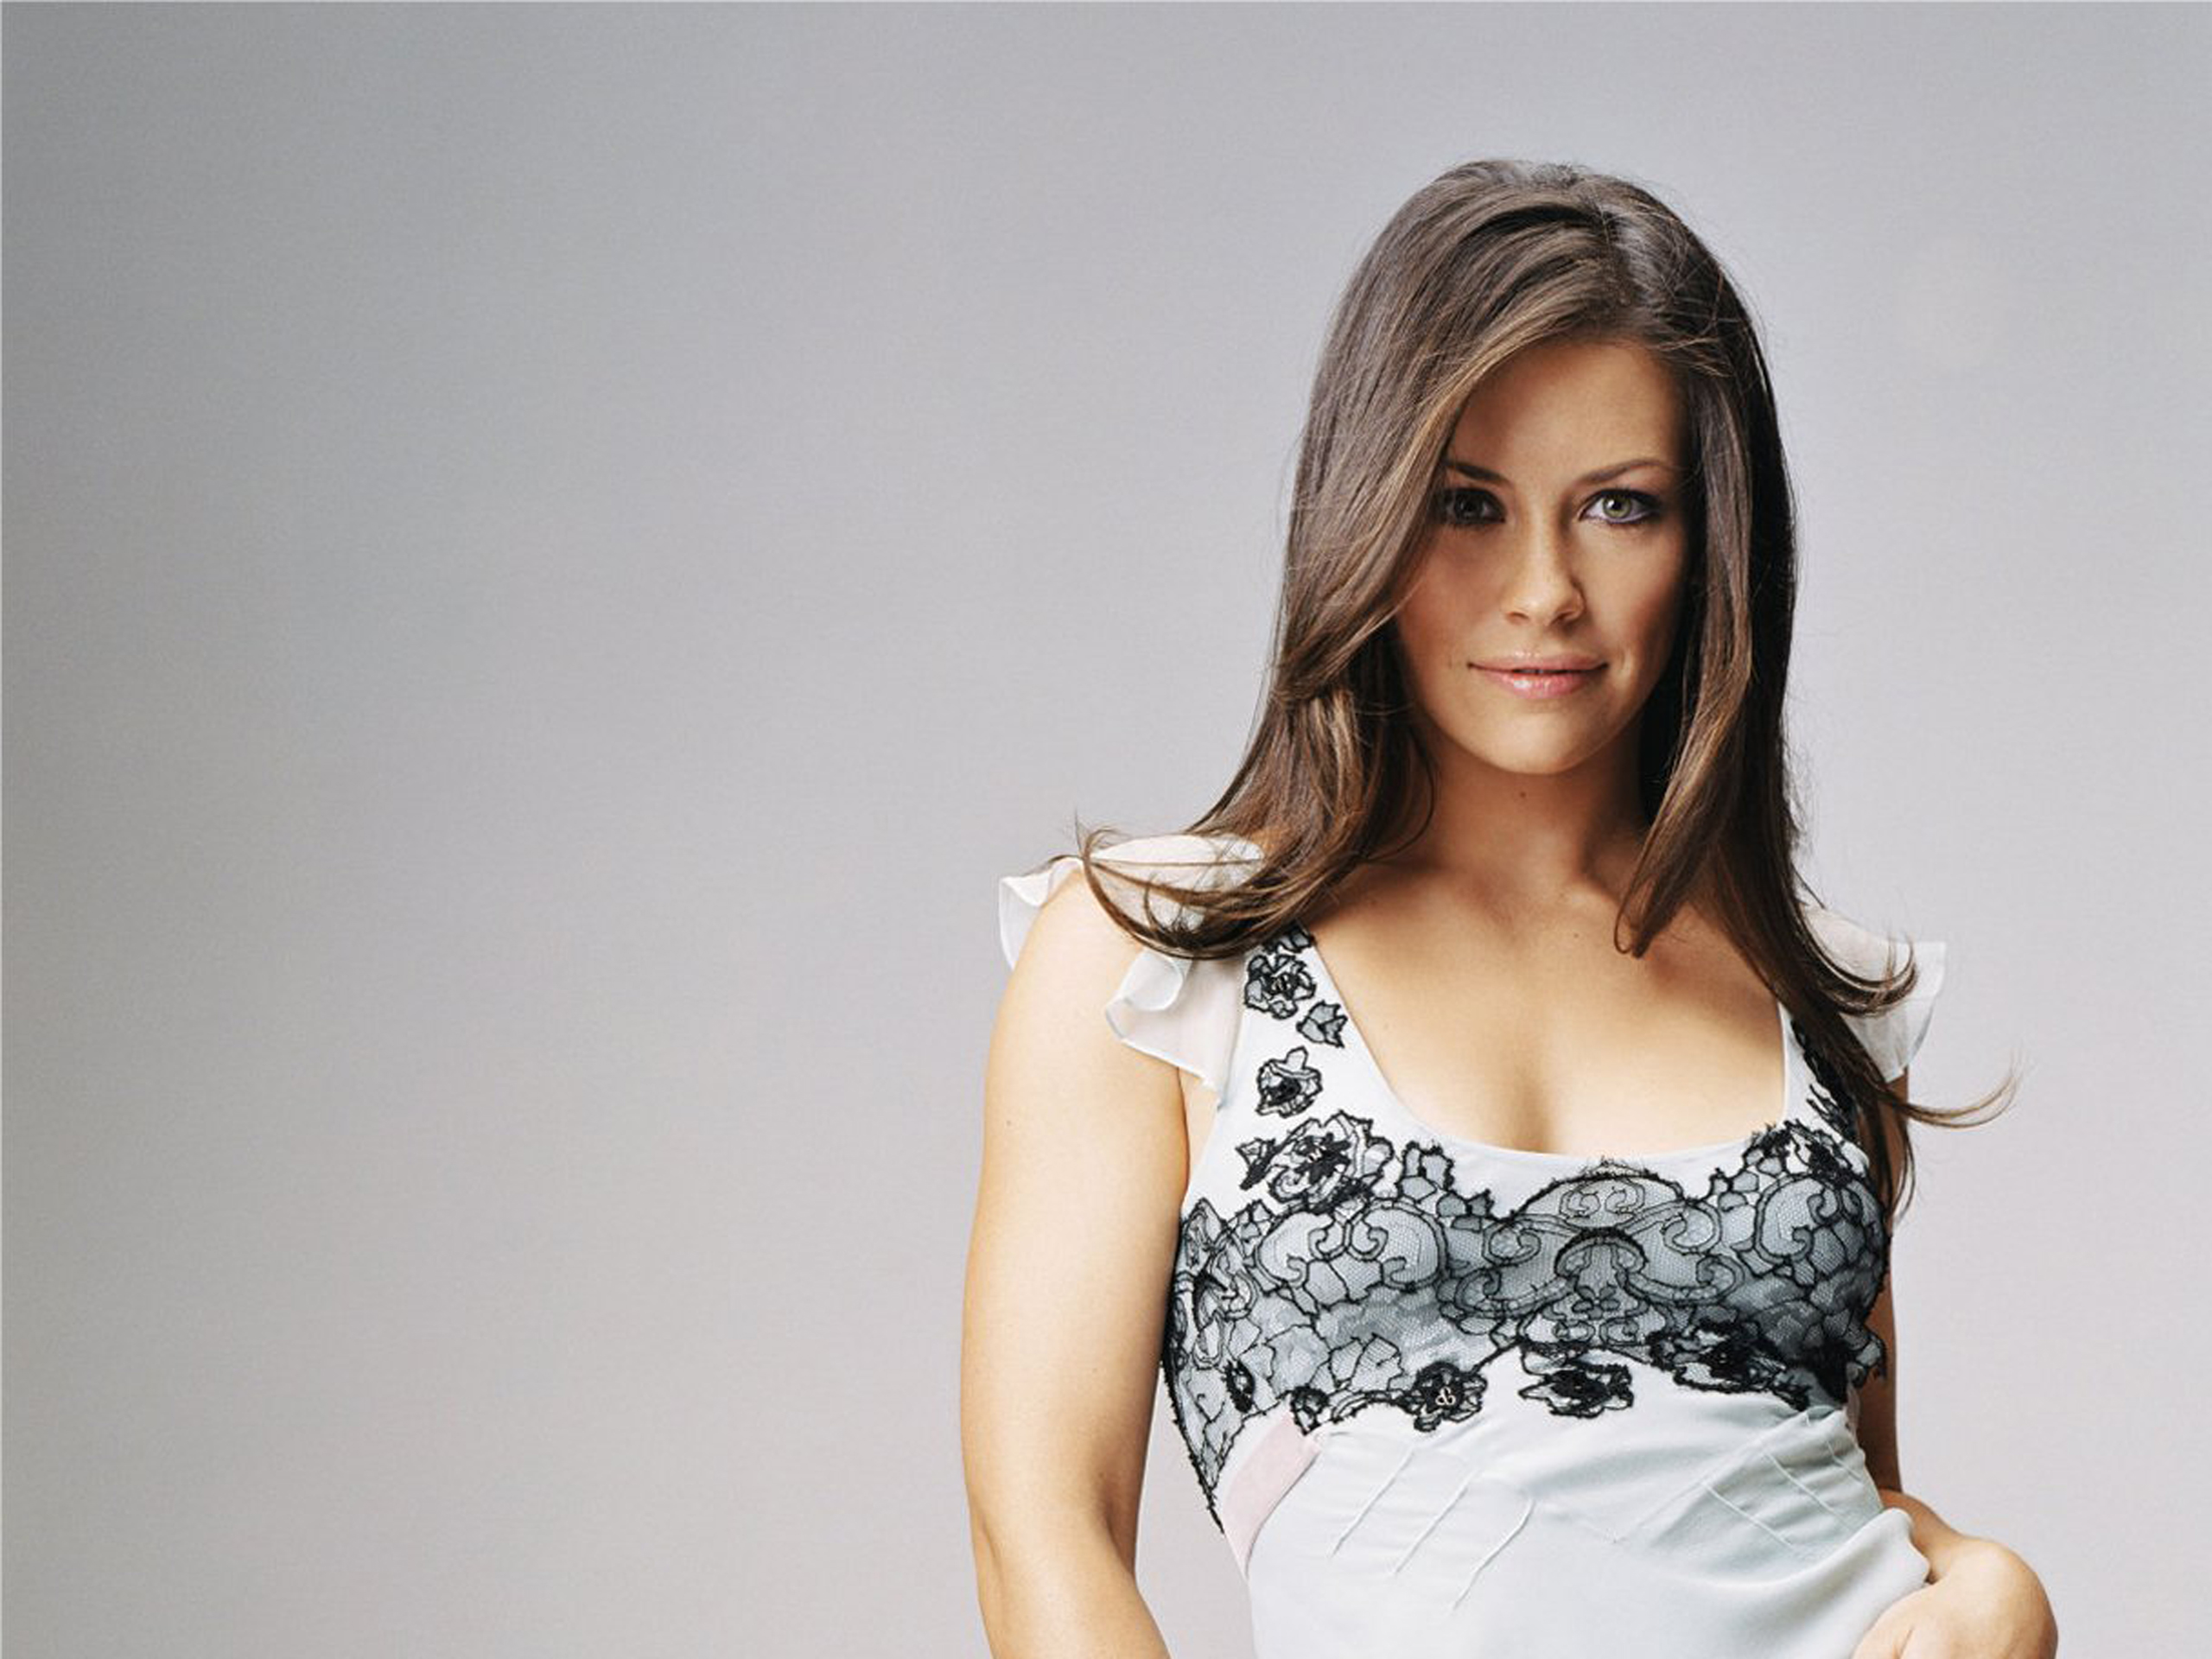 2560x1920 - Evangeline Lilly Wallpapers 35